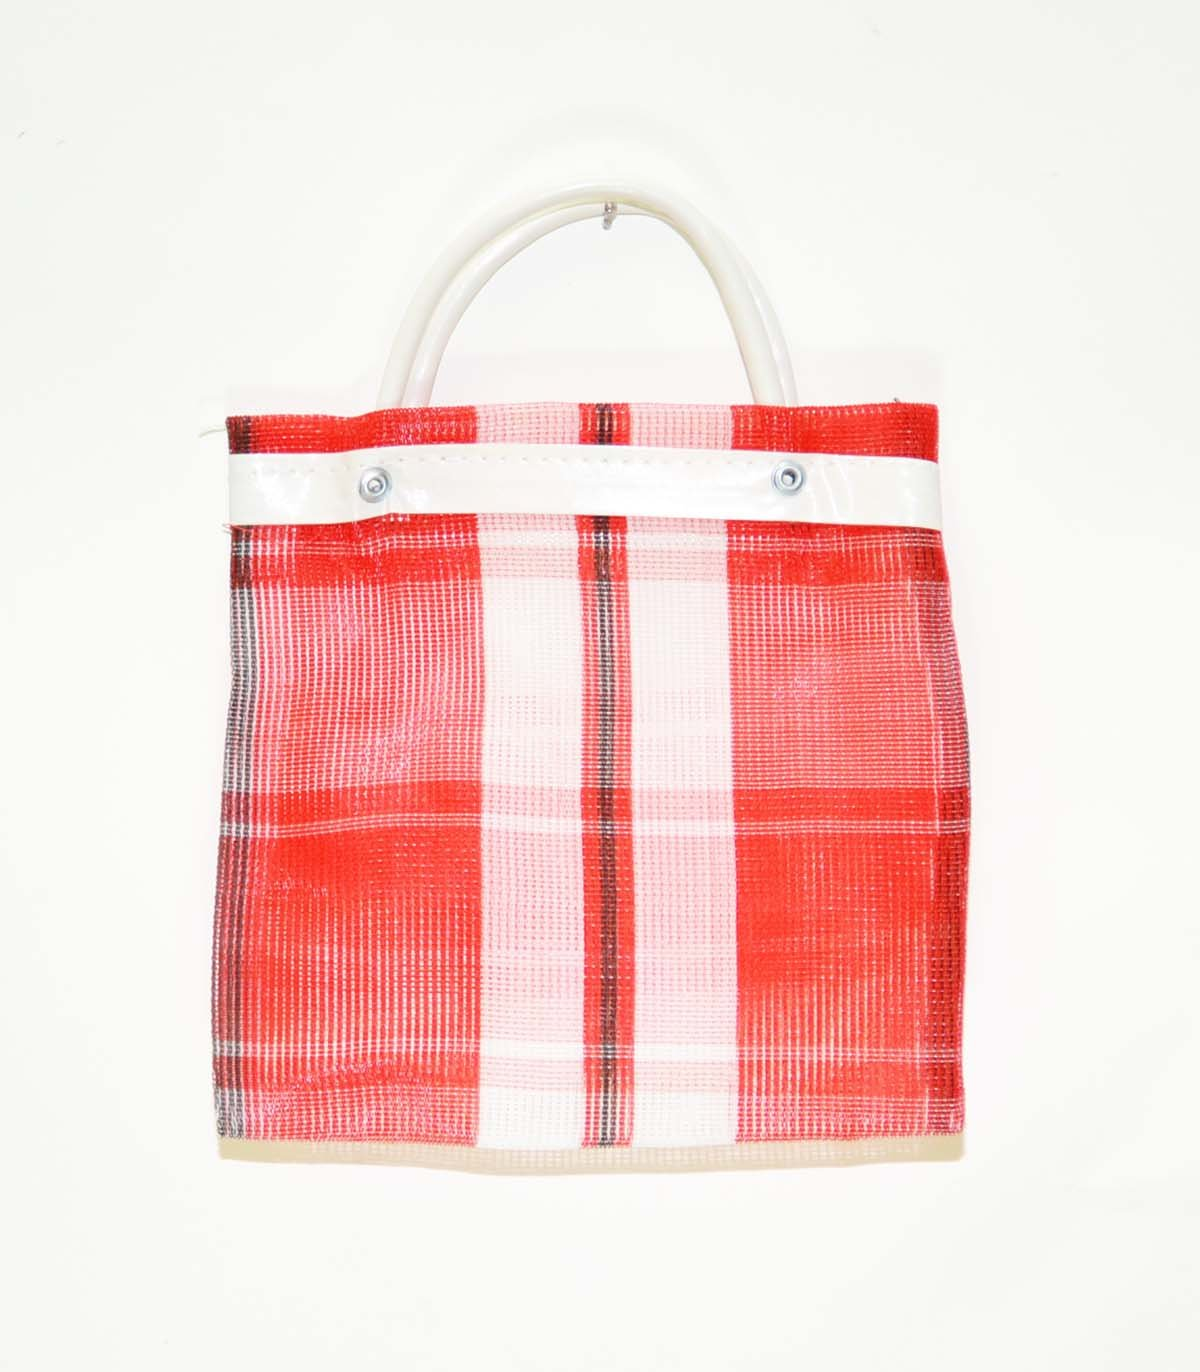 Amazon.com: Set of 6, Mini Mexican Tote Favor Bags-7.5 Inches High x 7 Inches Wide. Assorted Colors: Kitchen & Dining